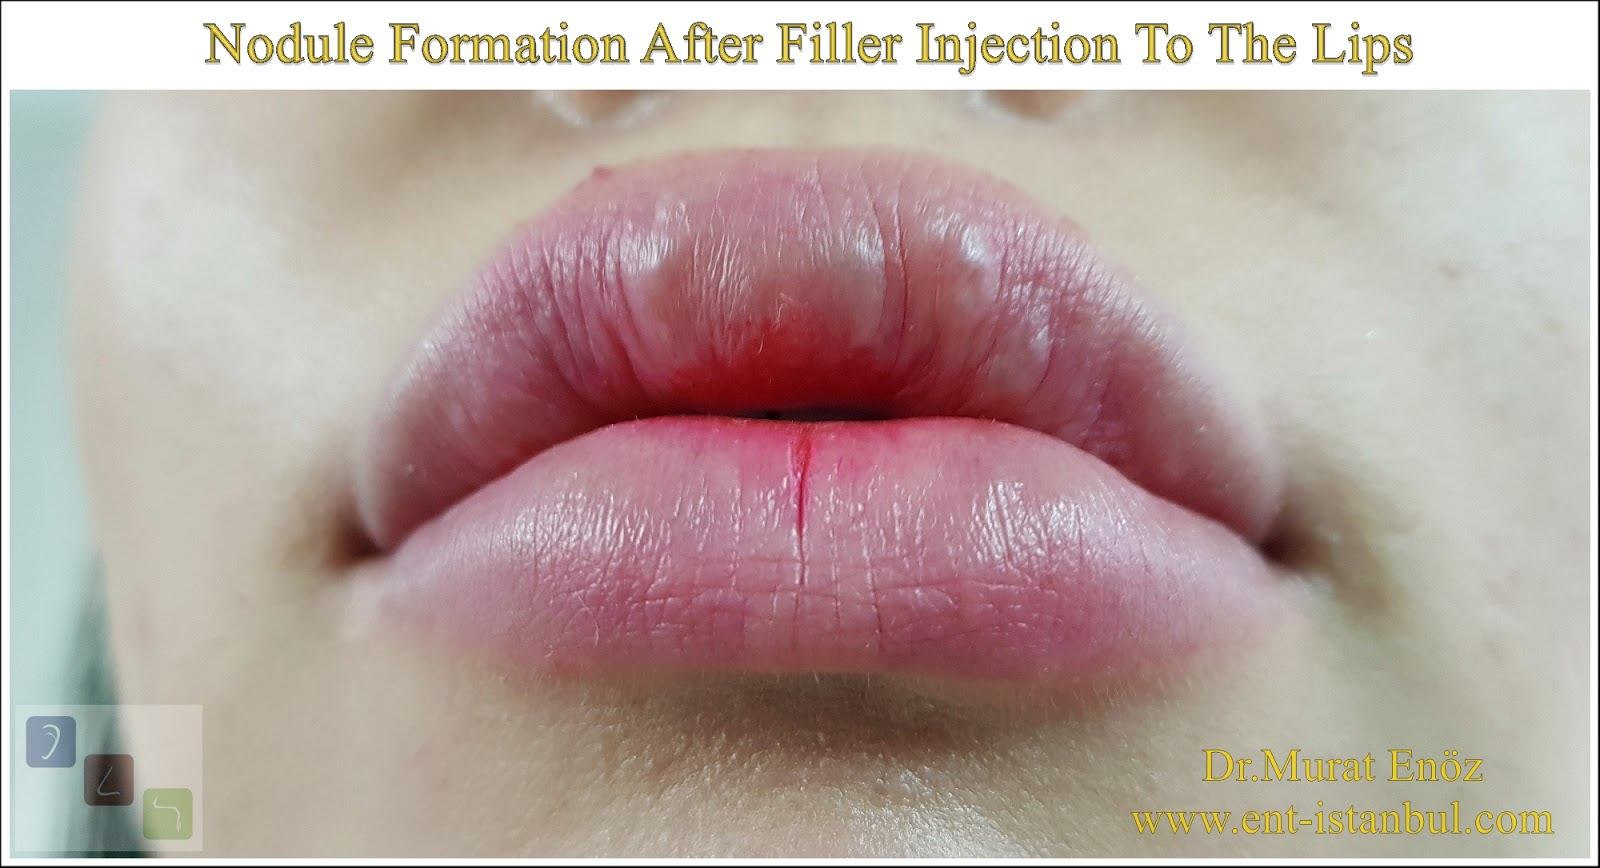 Nodule Formation After Filler Injection To The Lips